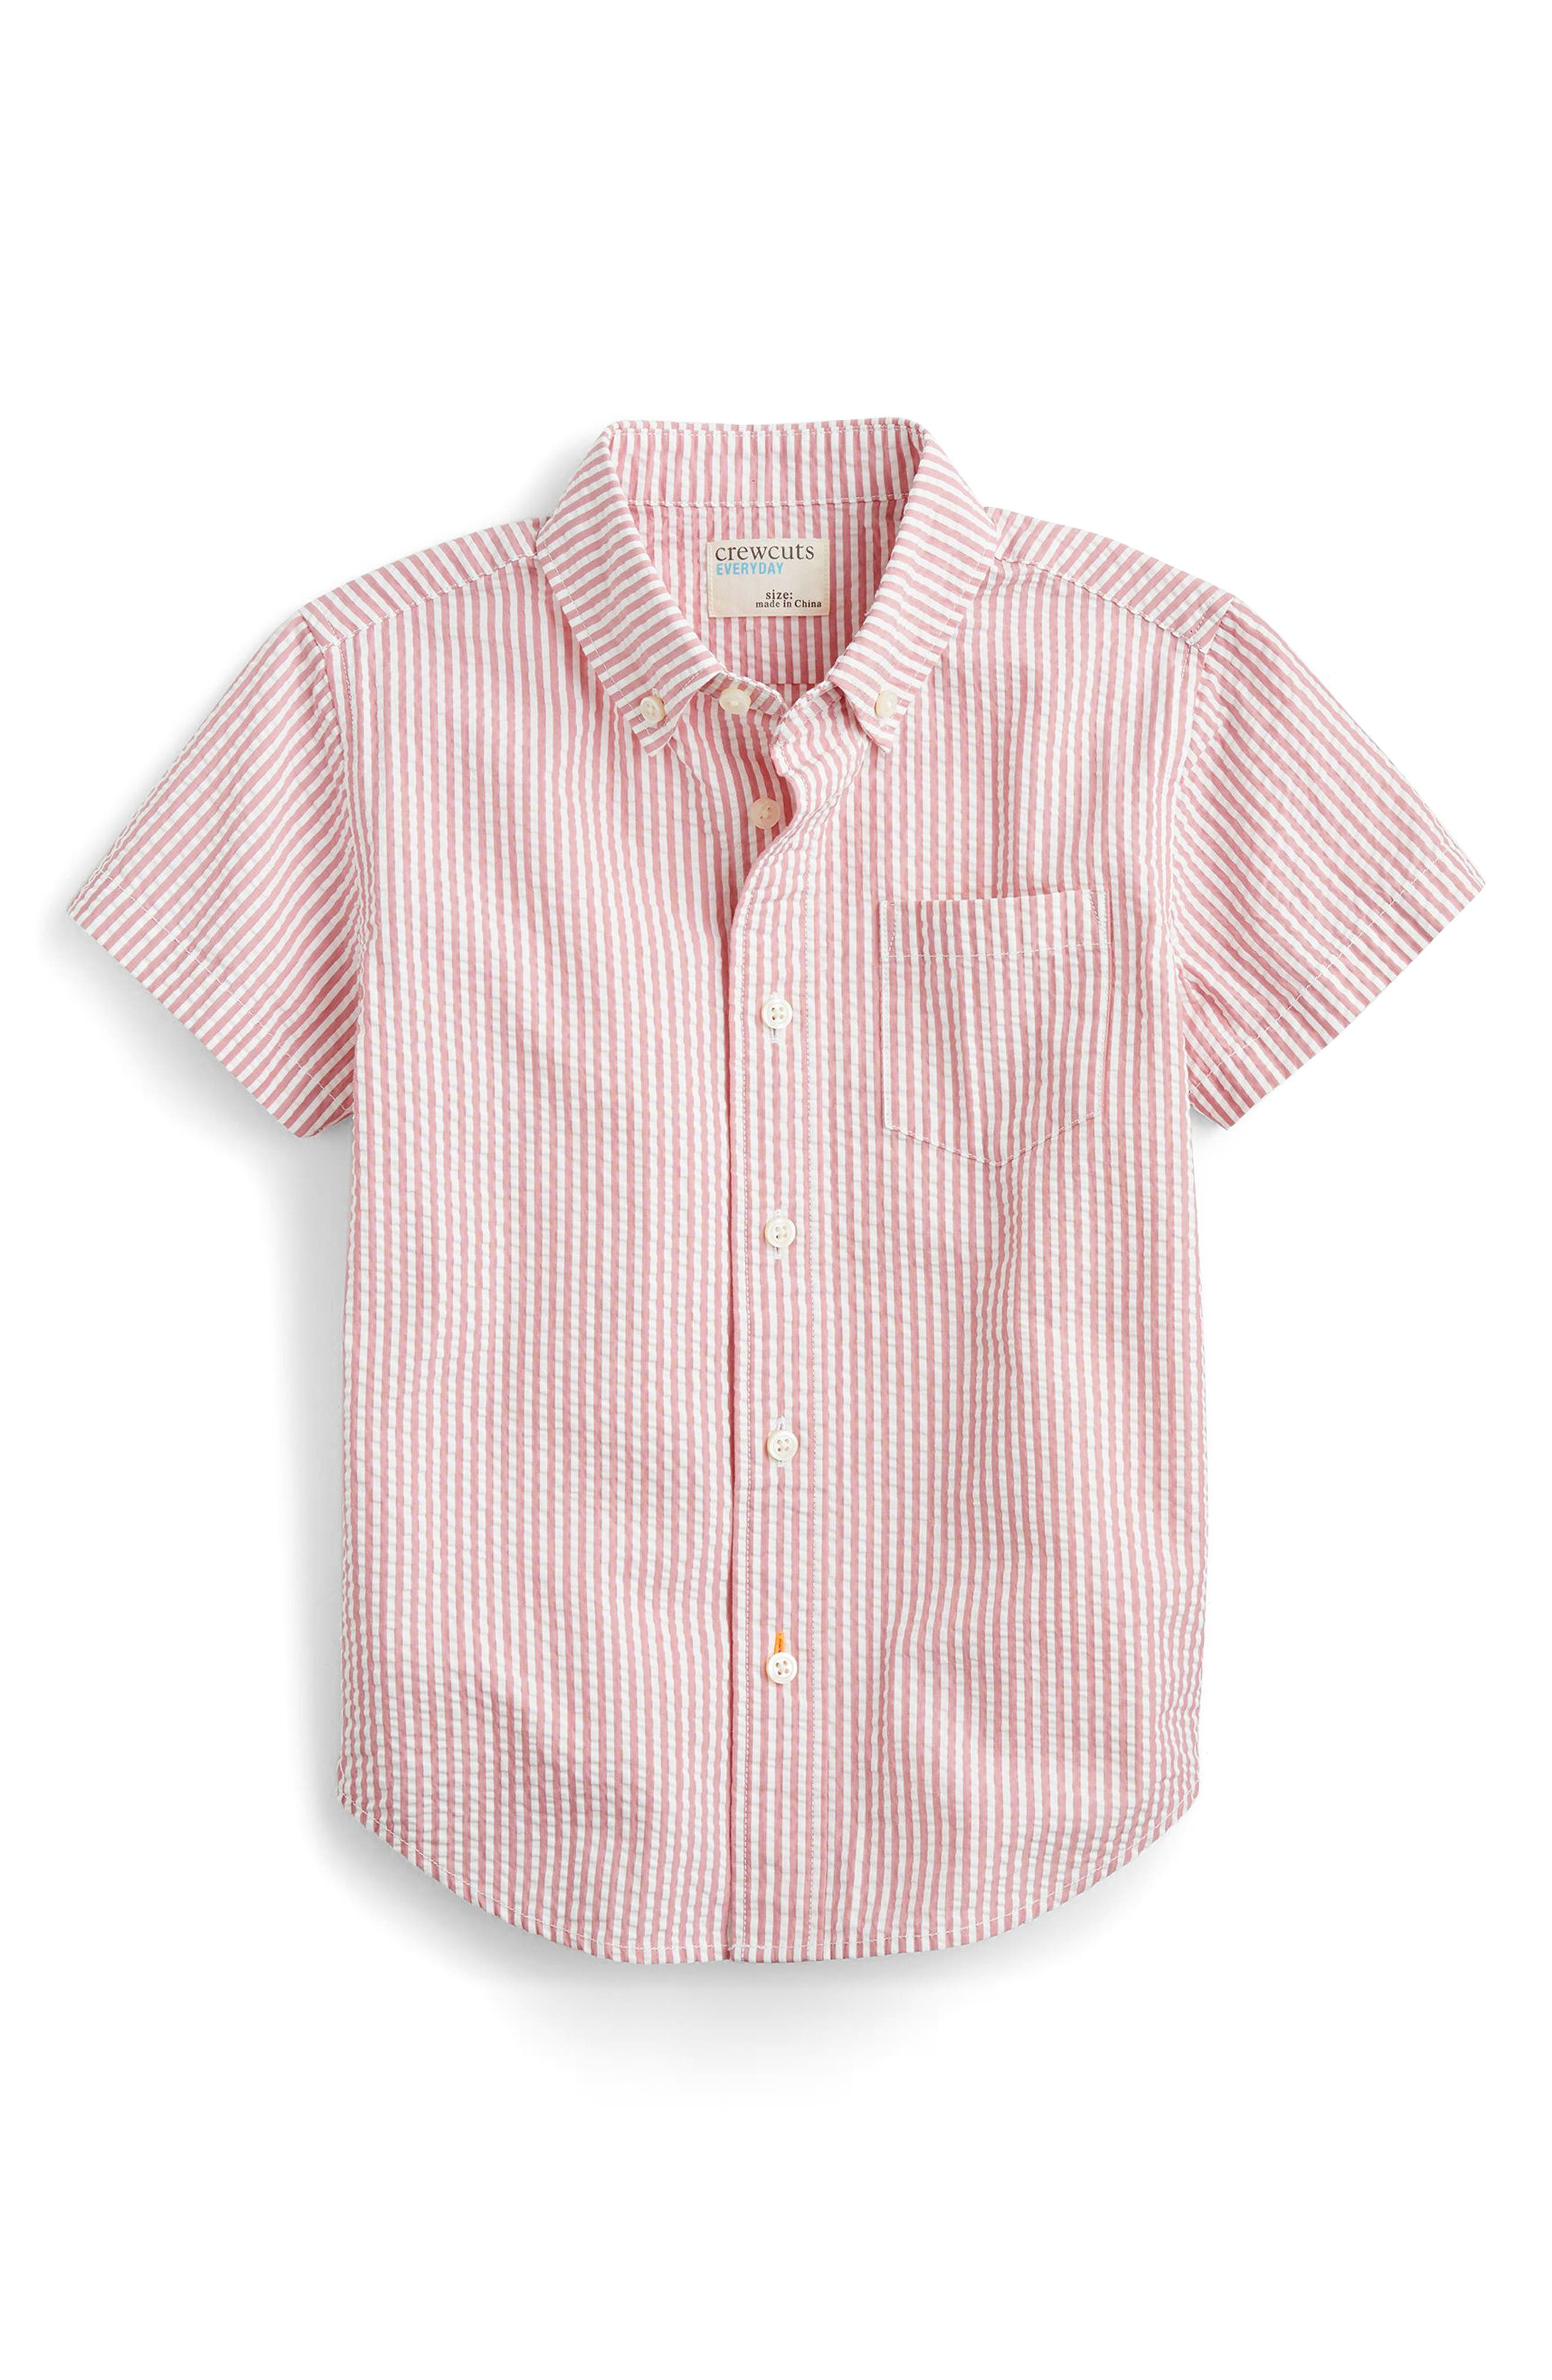 Seersucker Shirt,                             Main thumbnail 1, color,                             650